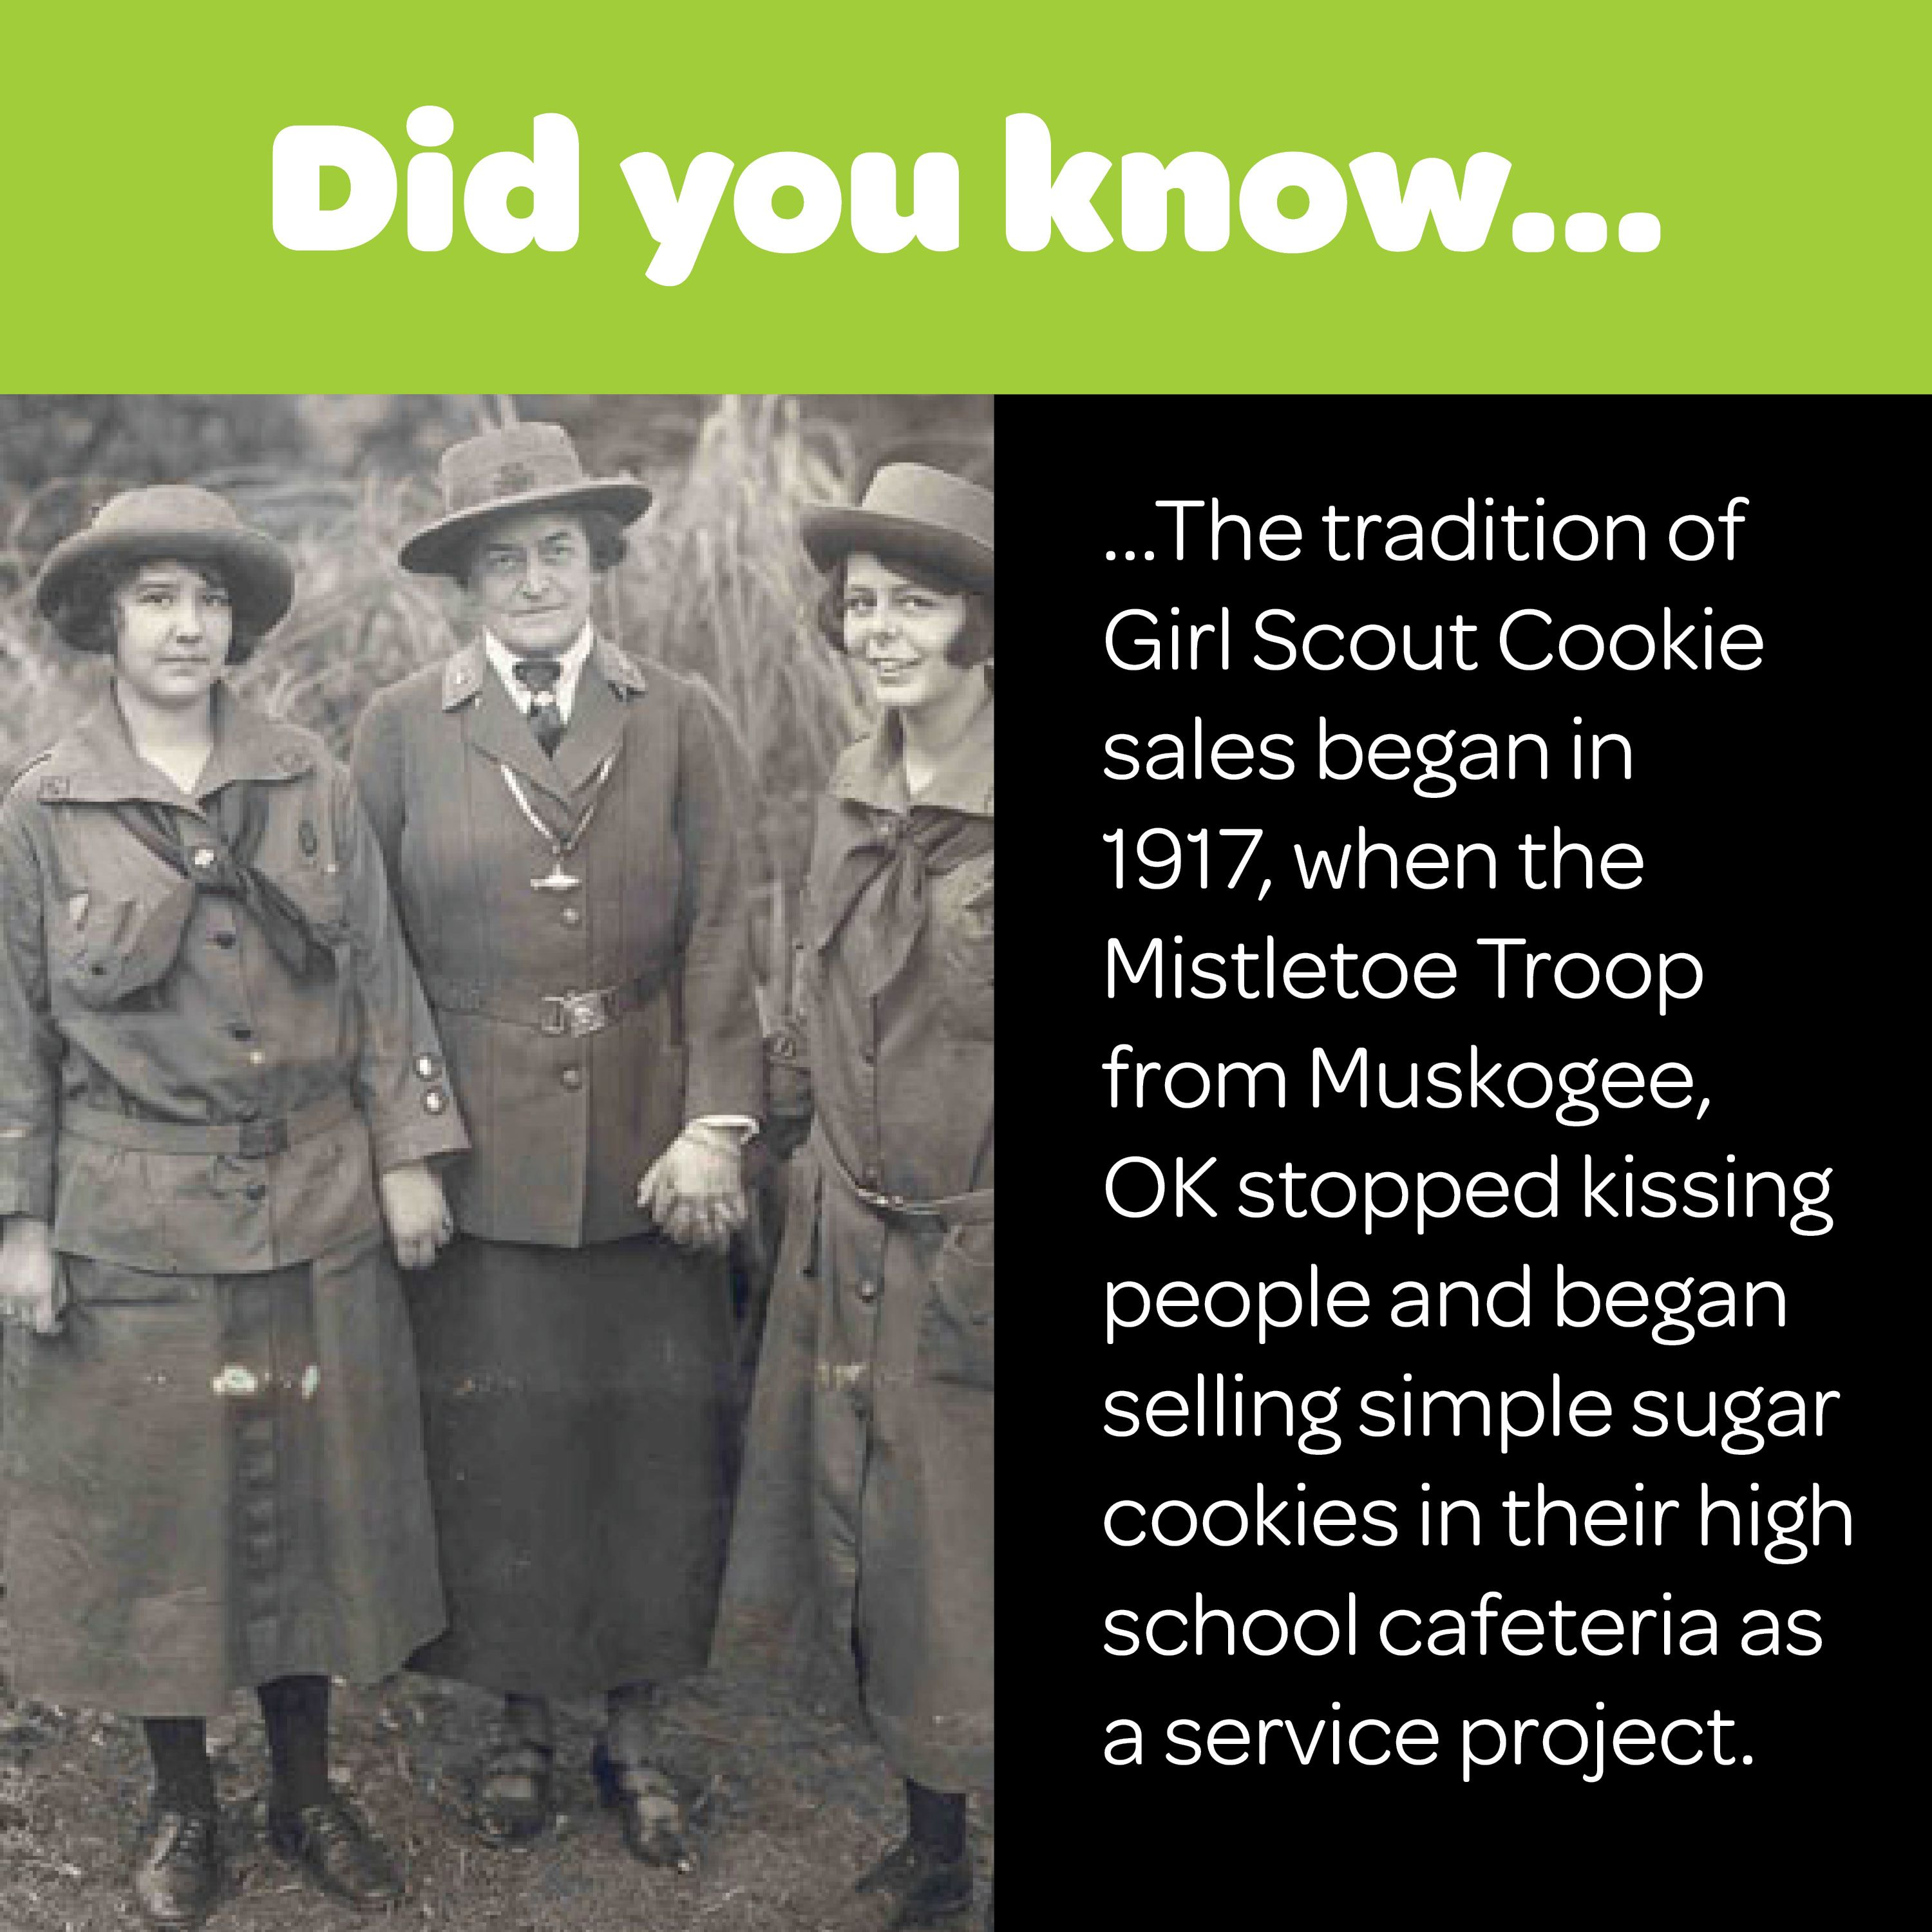 The tradition of Girl Scout Cookie sales began in 1917.